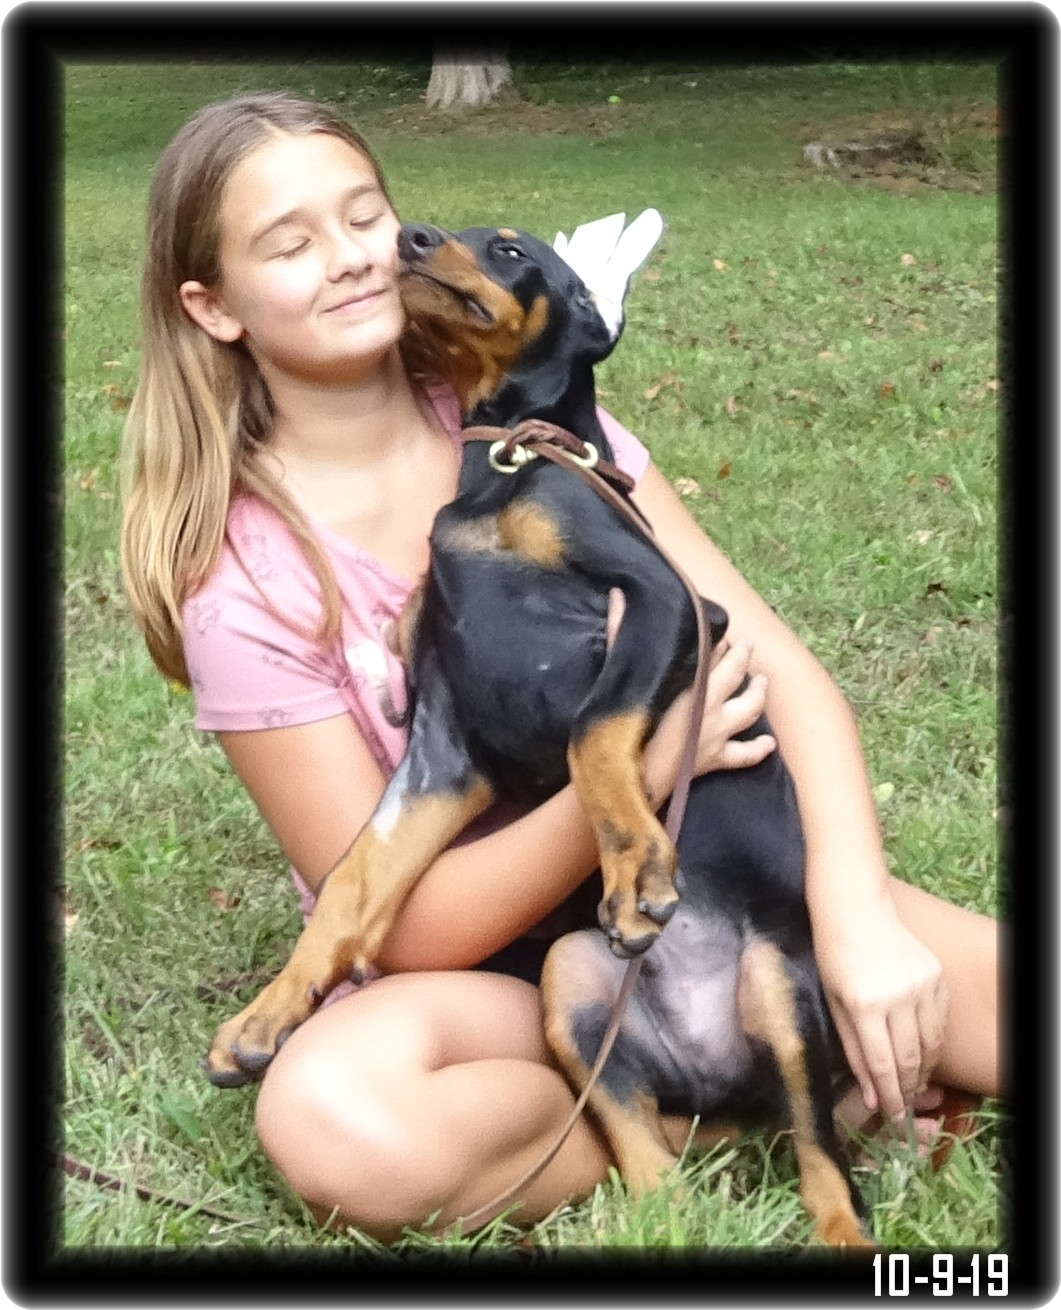 Gunner...born 7-21-19 from Greta and Caspian - reserved over a year ago and is a future Top20 Dobe now home in Louisville KY